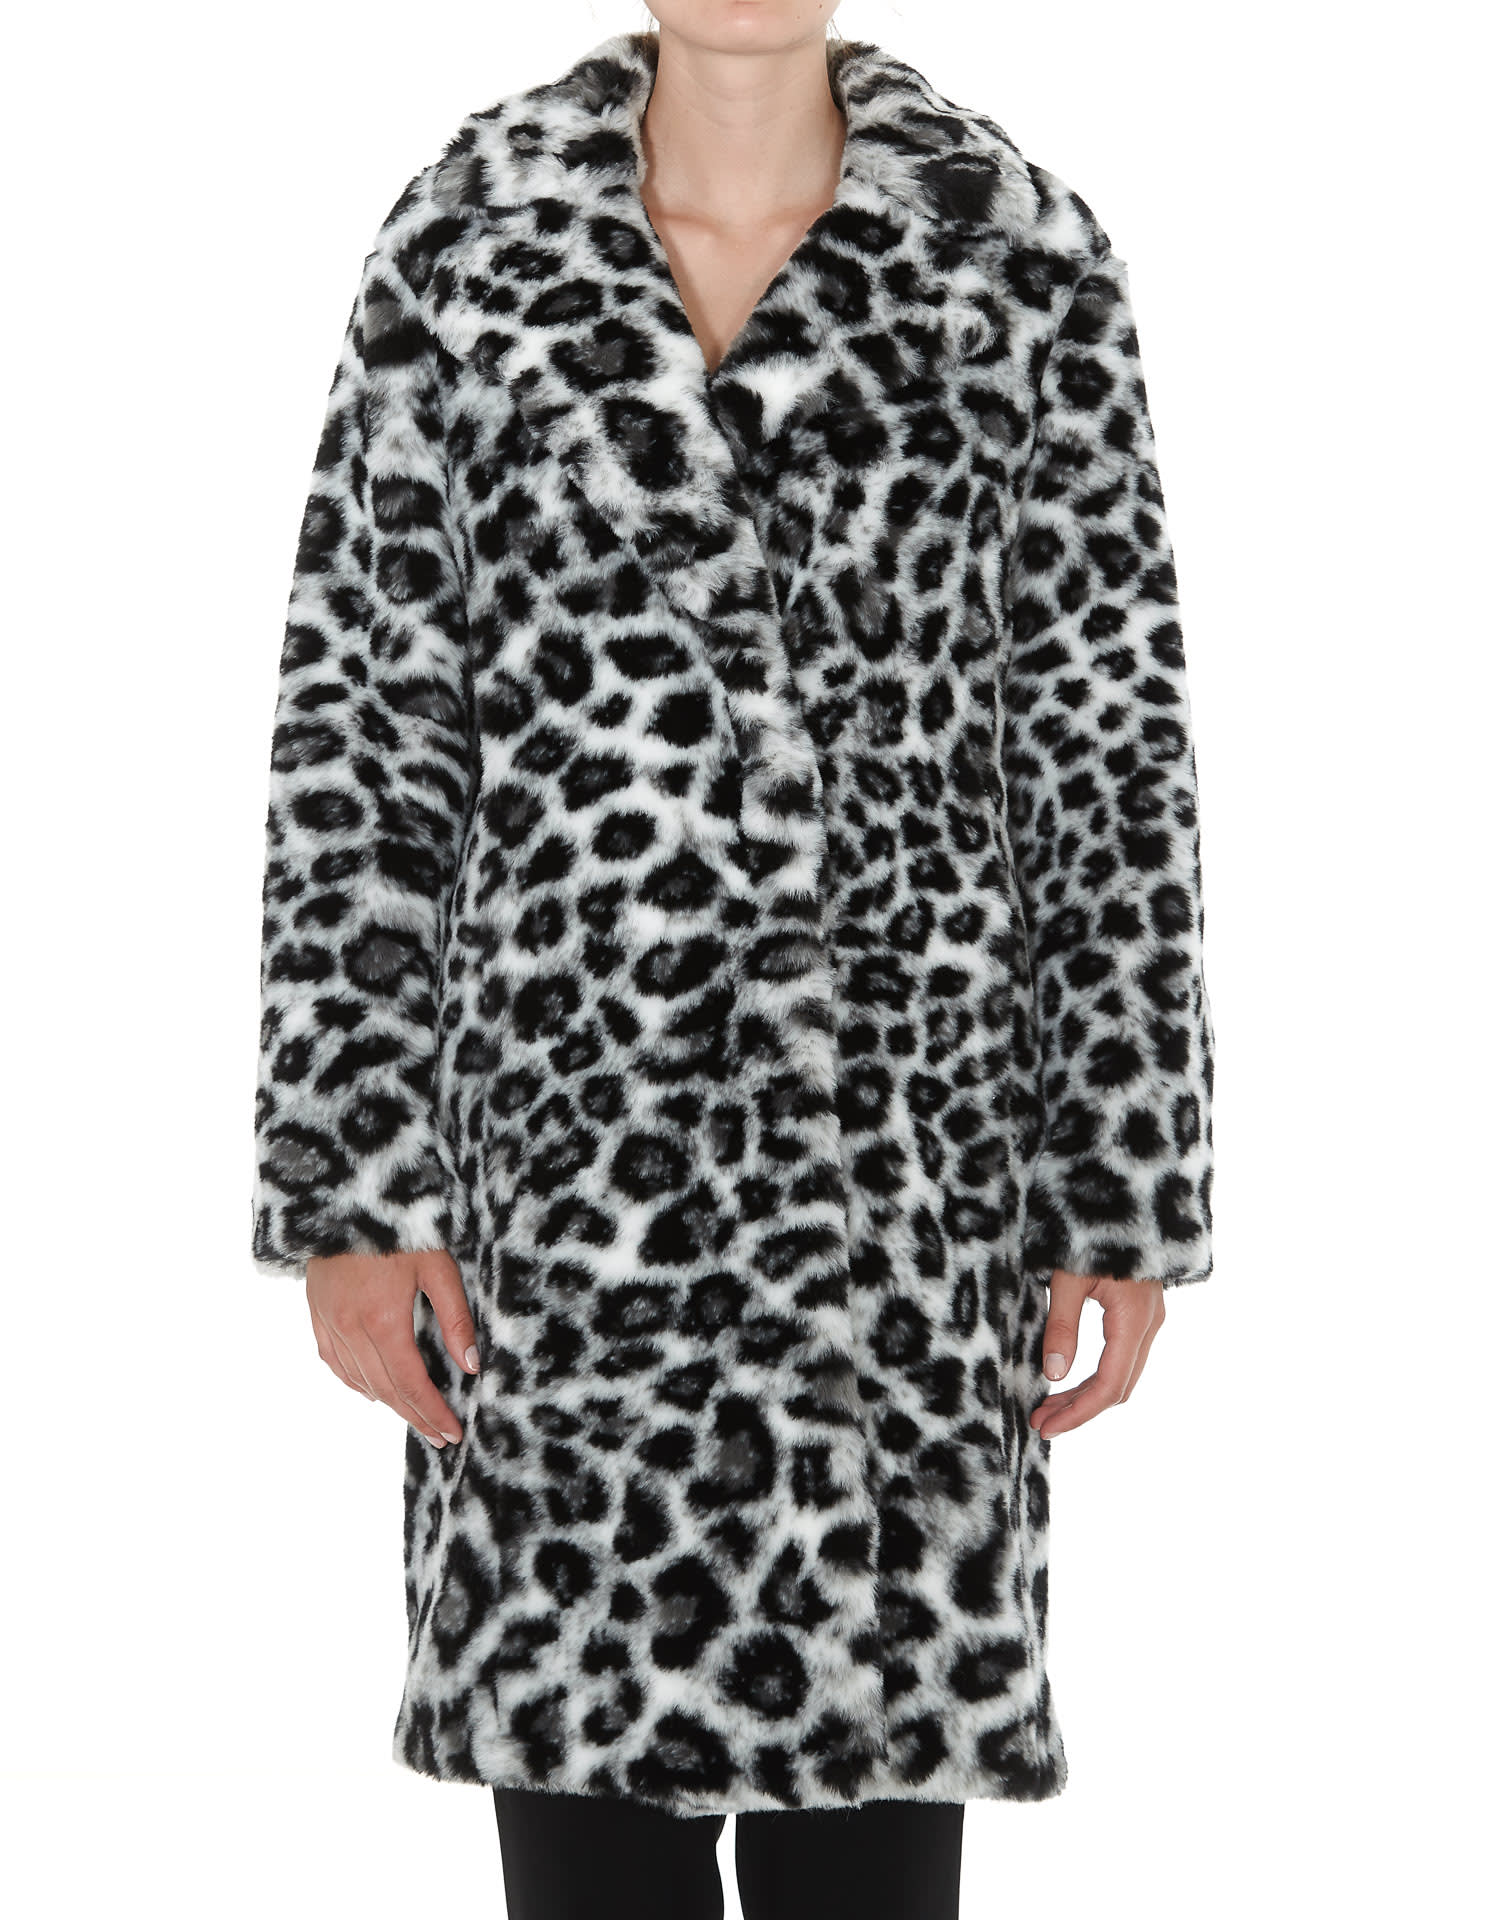 Alberta Ferretti Love Me Wild Eco Fur Coat